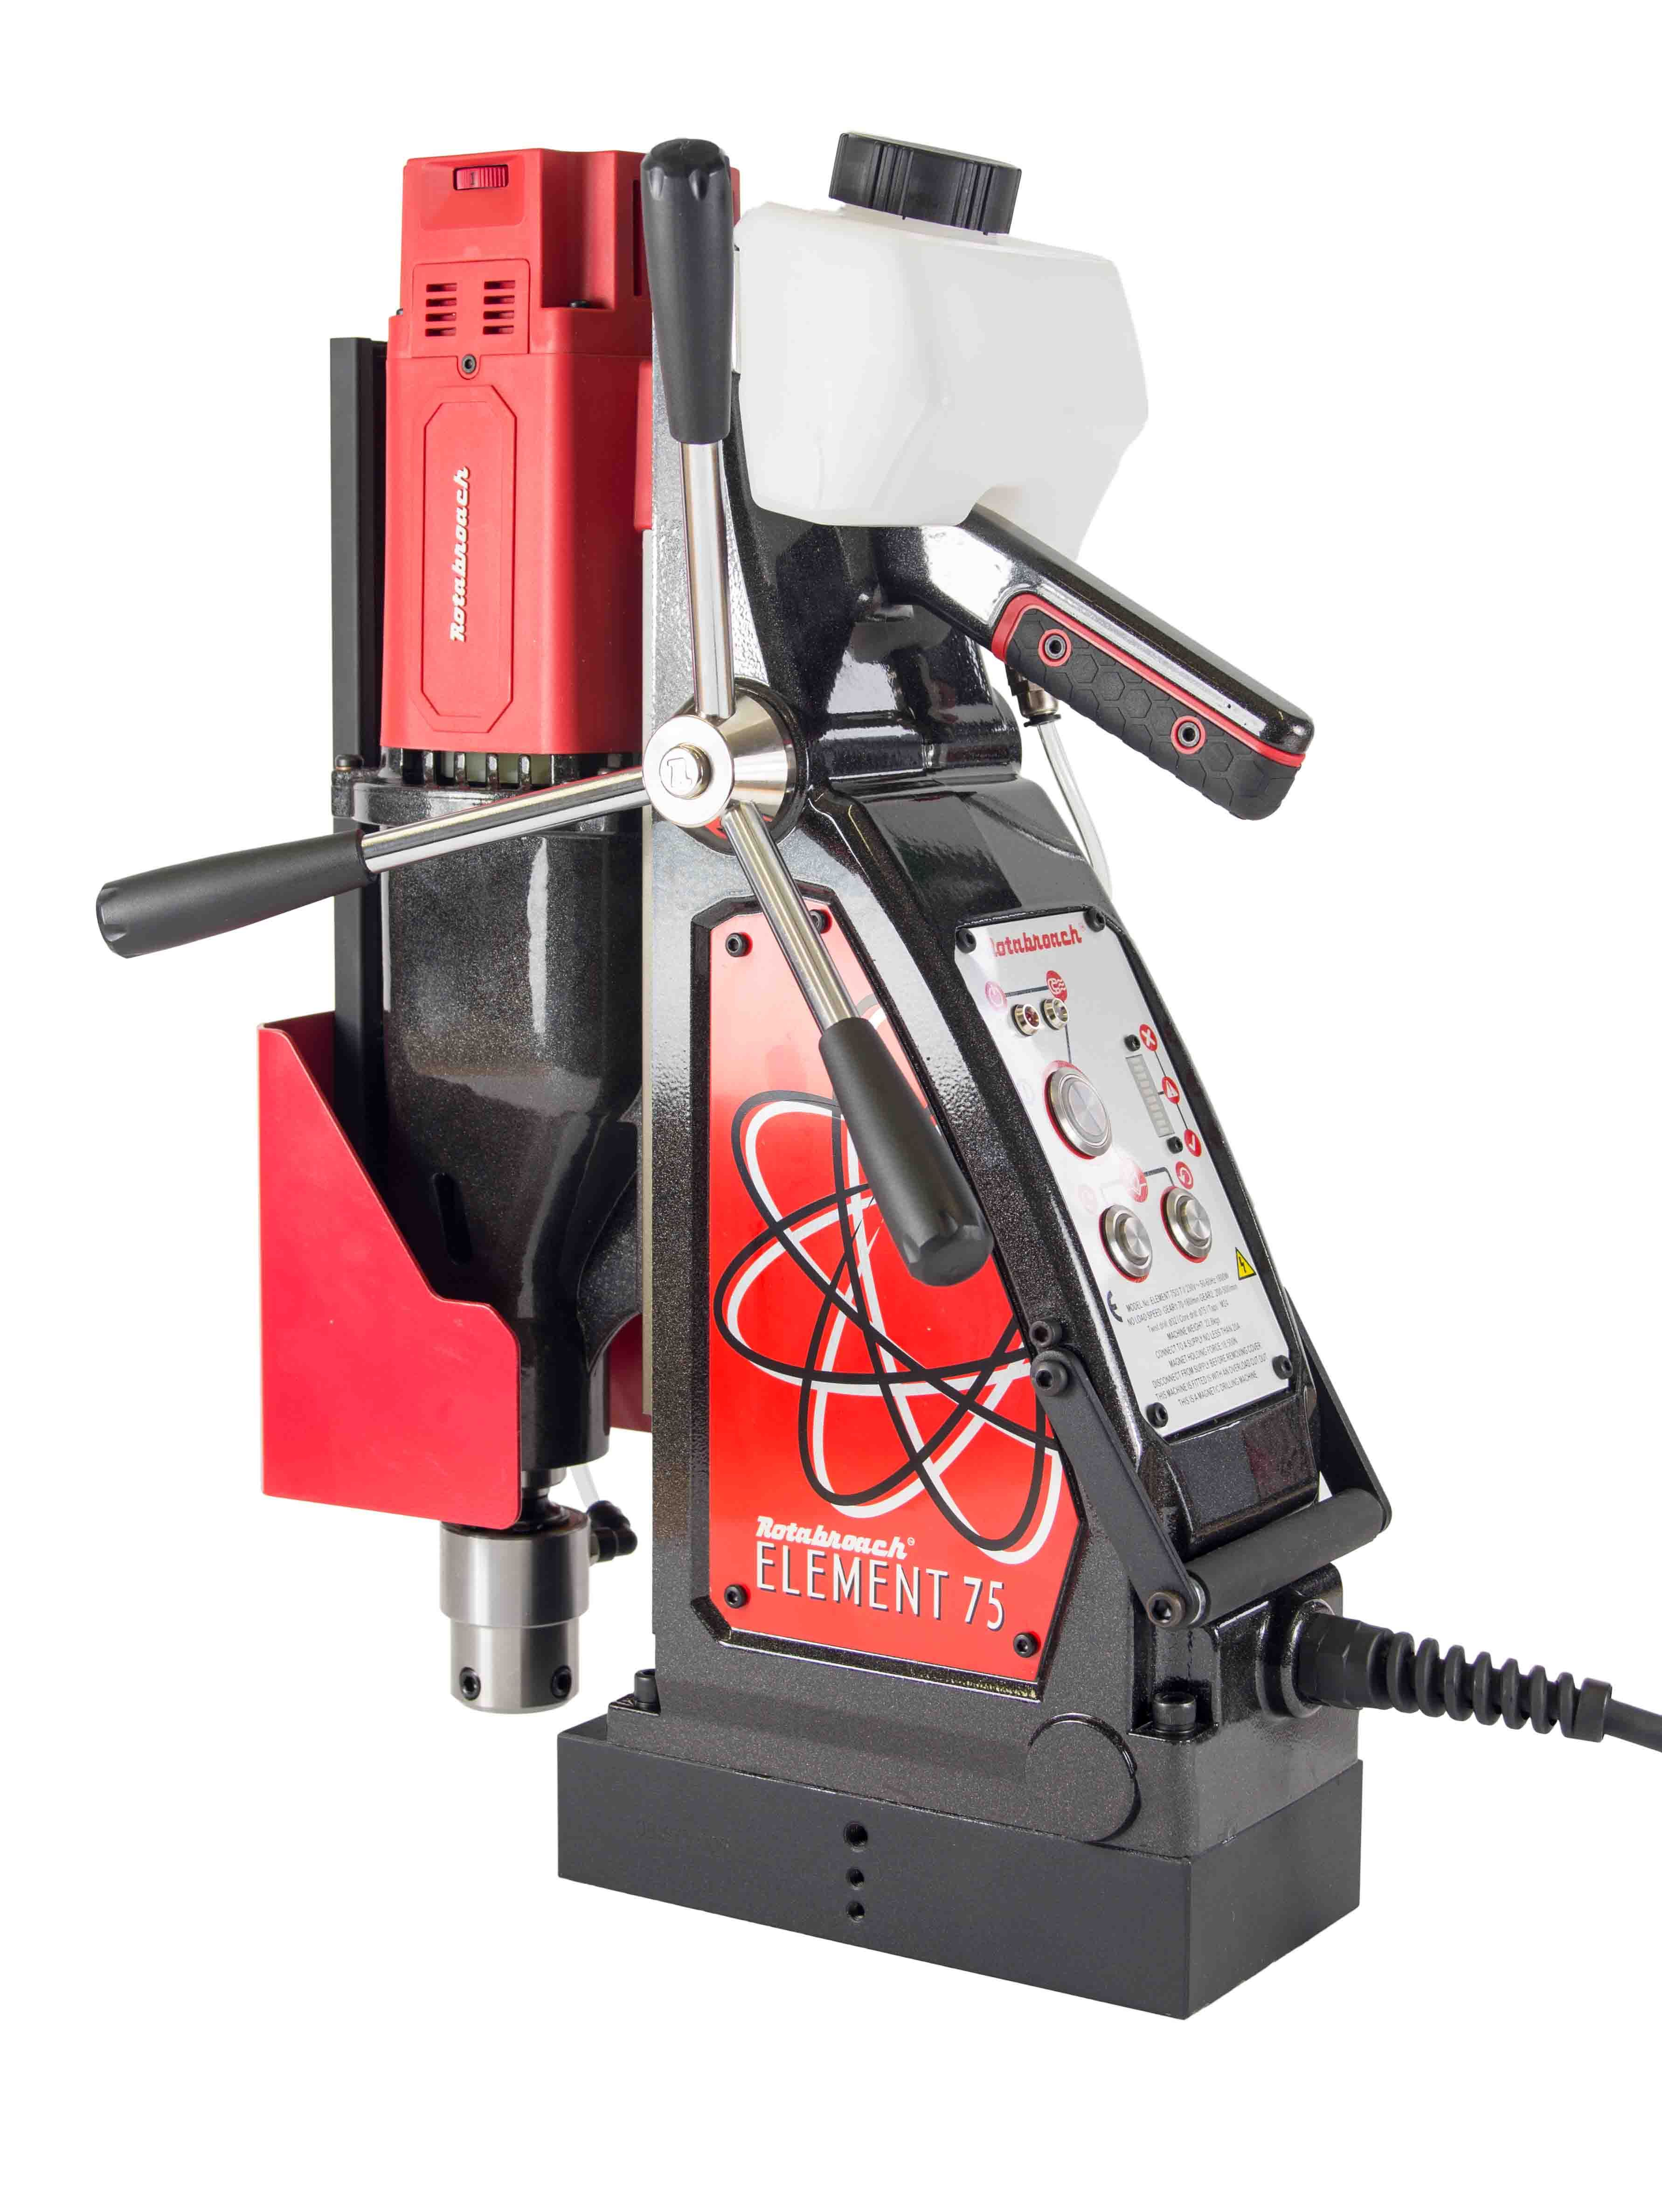 Rotabroach Element 75 1800w 75mm Magnetic Drill